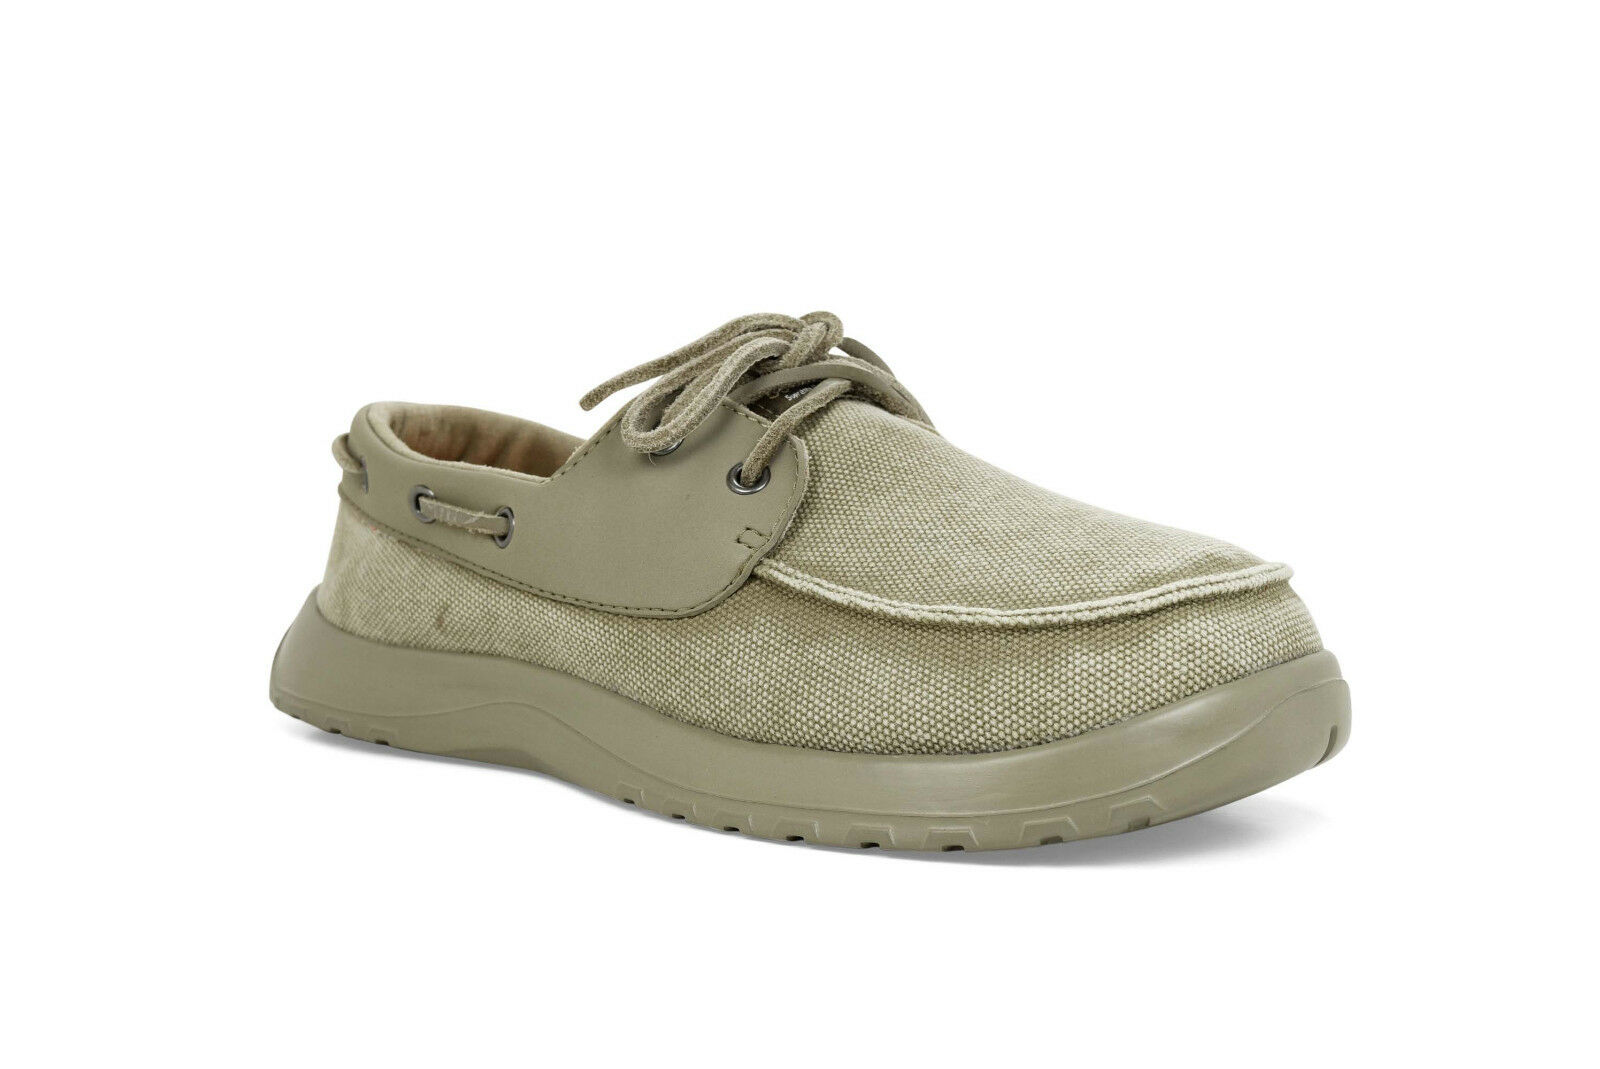 Softscience Cruise Canvas Moccasin Boat shoes Yachting shoes Khaki